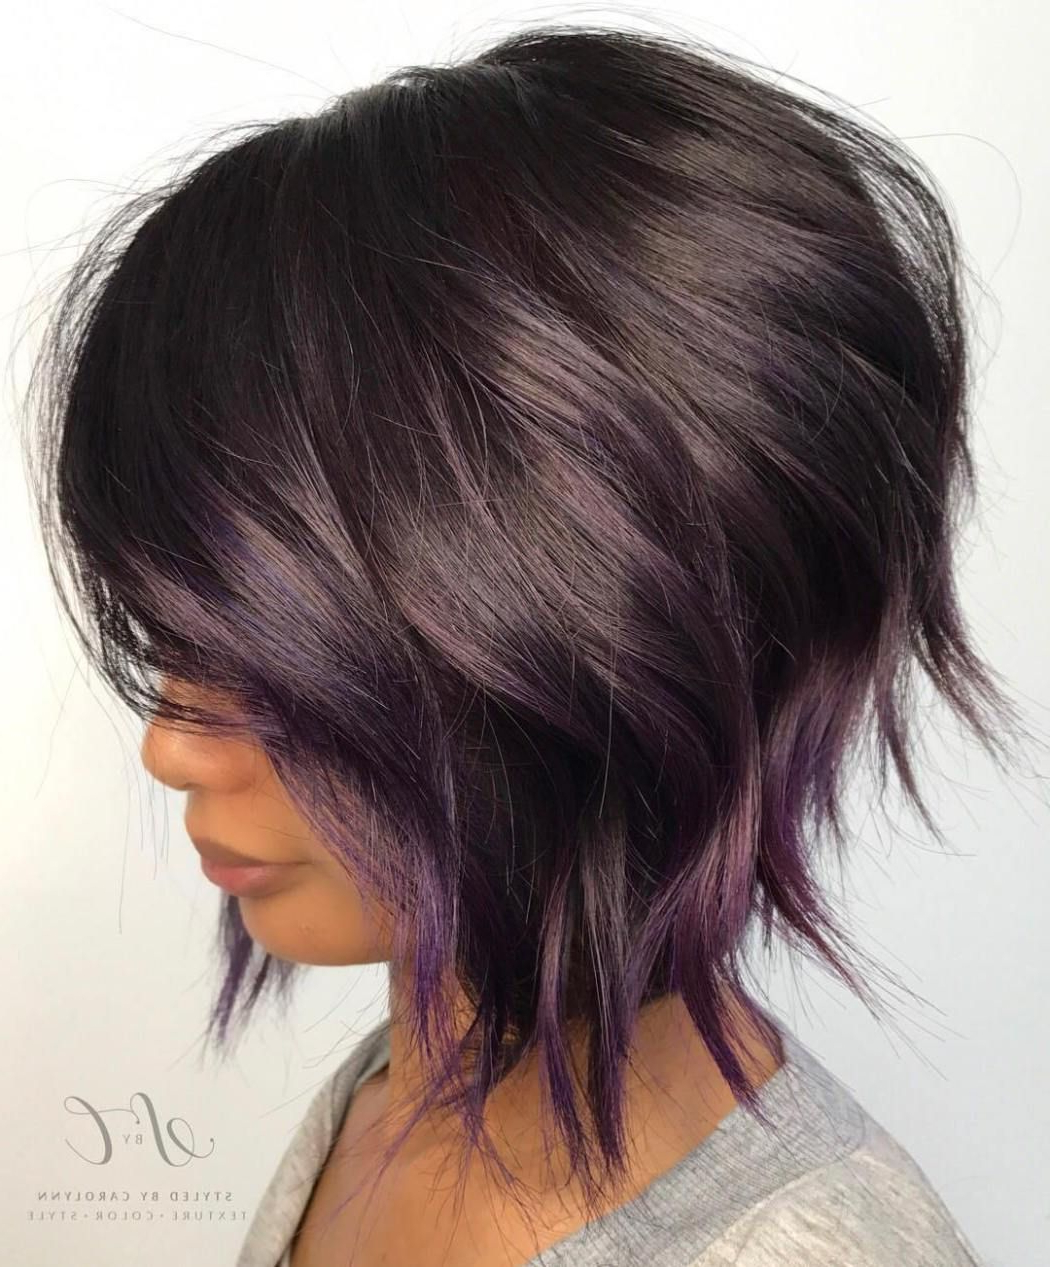 20 Purple Balayage Ideas From Subtle To Vibrant | Hair Intended For Short Stacked Bob Hairstyles With Subtle Balayage (View 3 of 20)